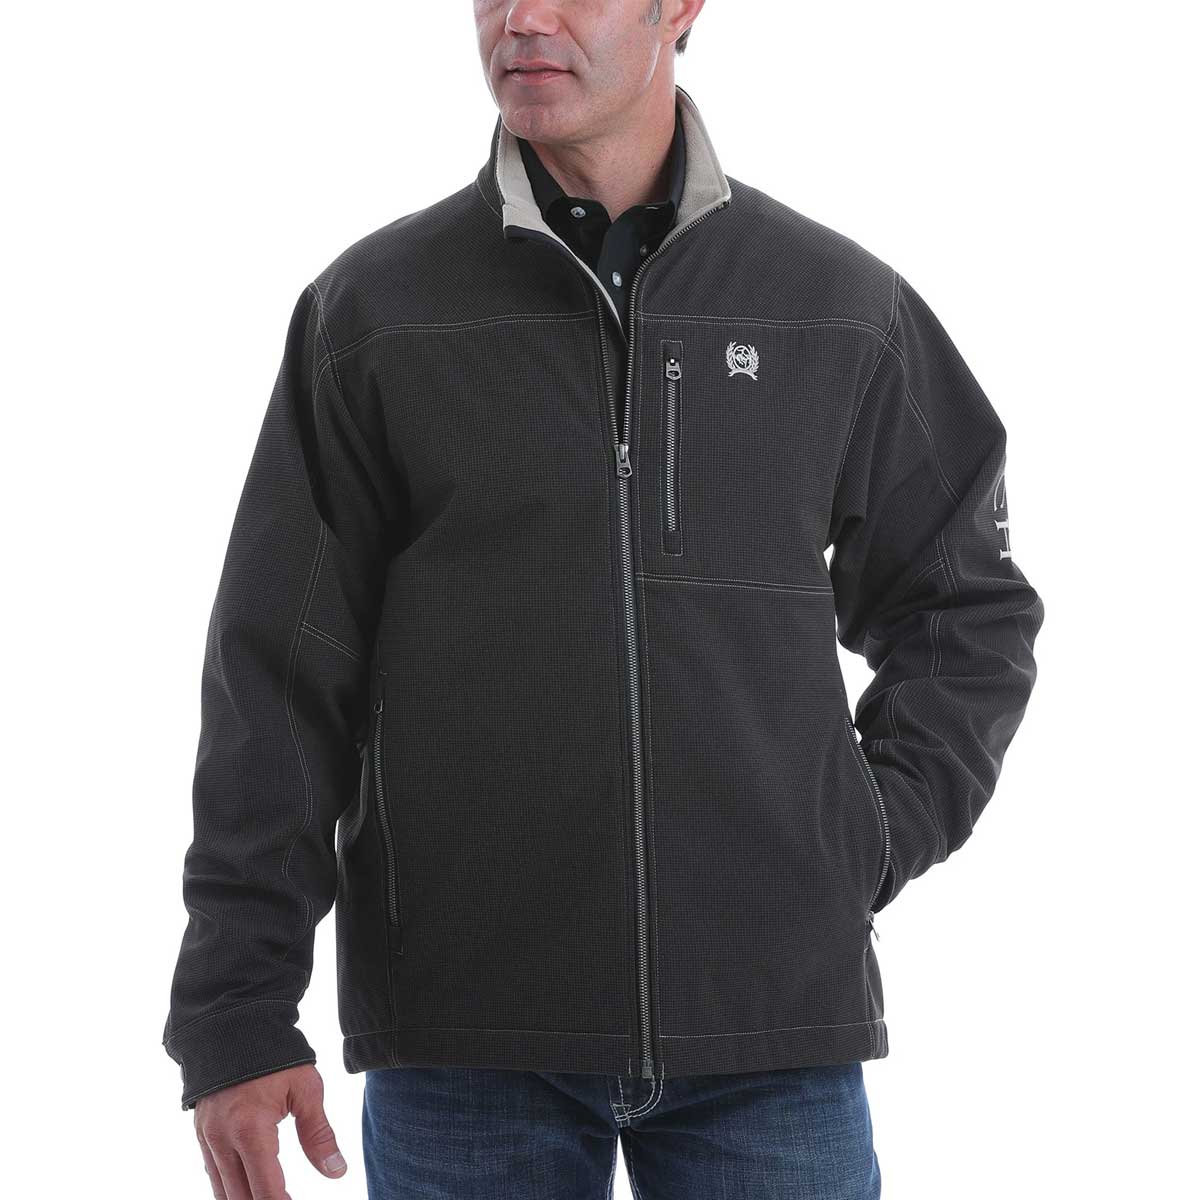 Cinch Men's Concealed Carry Bonded Jacket - Black Silver